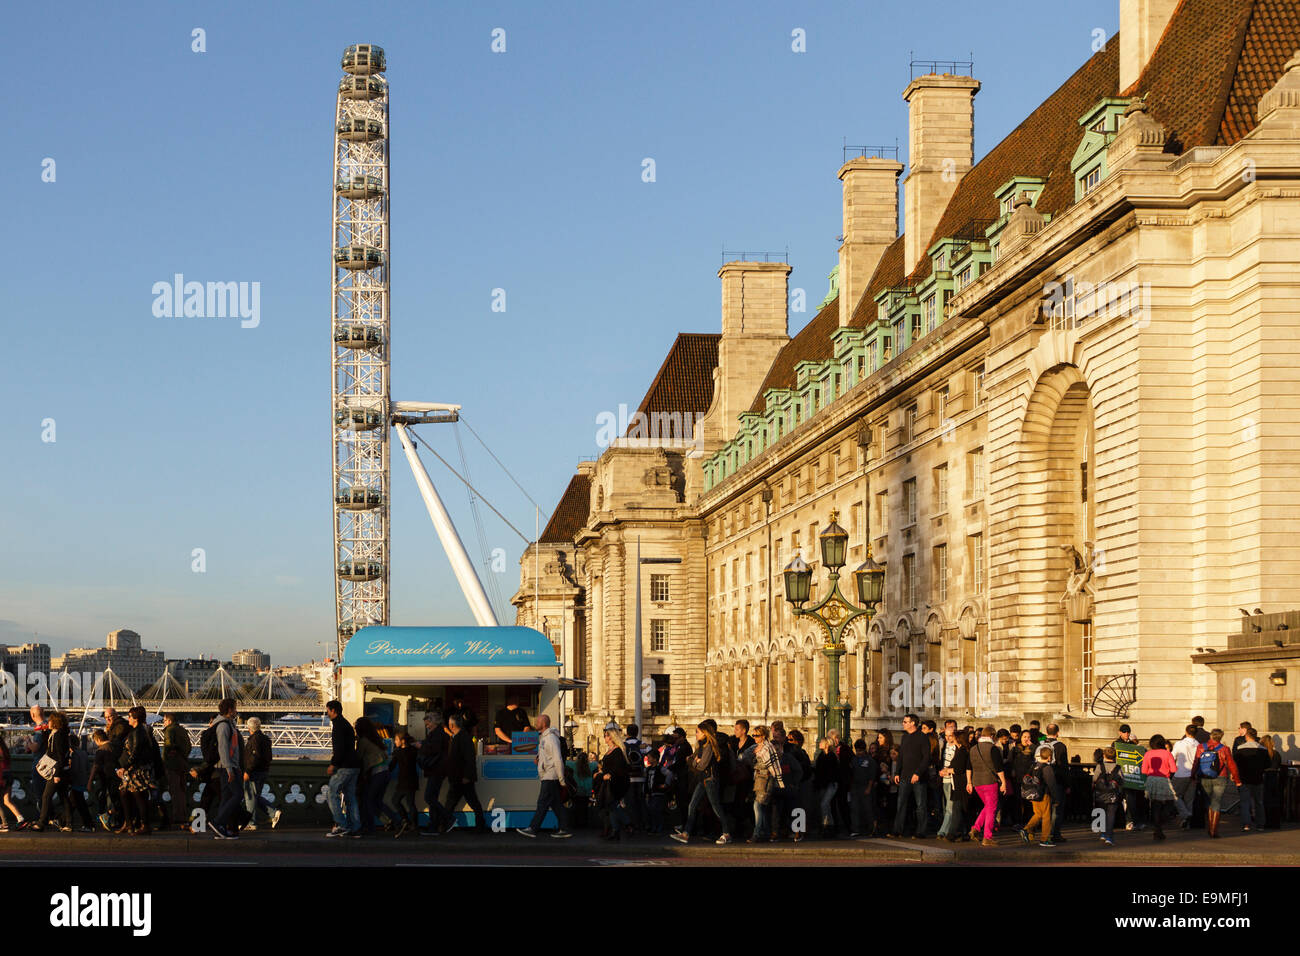 Crowds cross Westminster Bridge with the London Eye and County Hall behind, London, England,UK - Stock Image